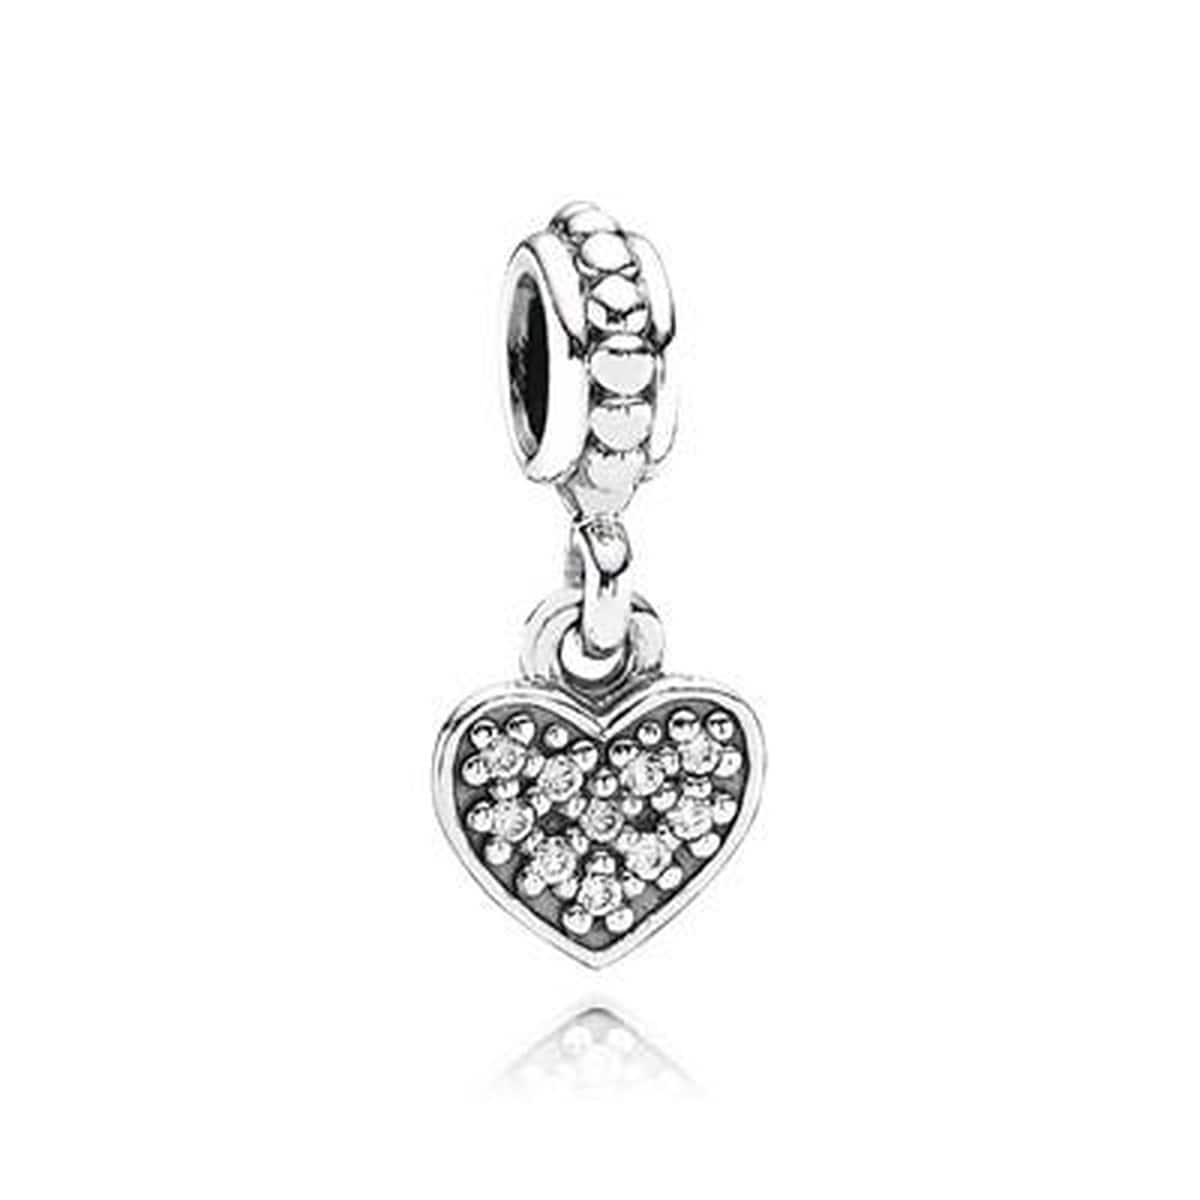 Heart Clear Cubic Zirconia Charm - 791023CZ-Pandora-Renee Taylor Gallery